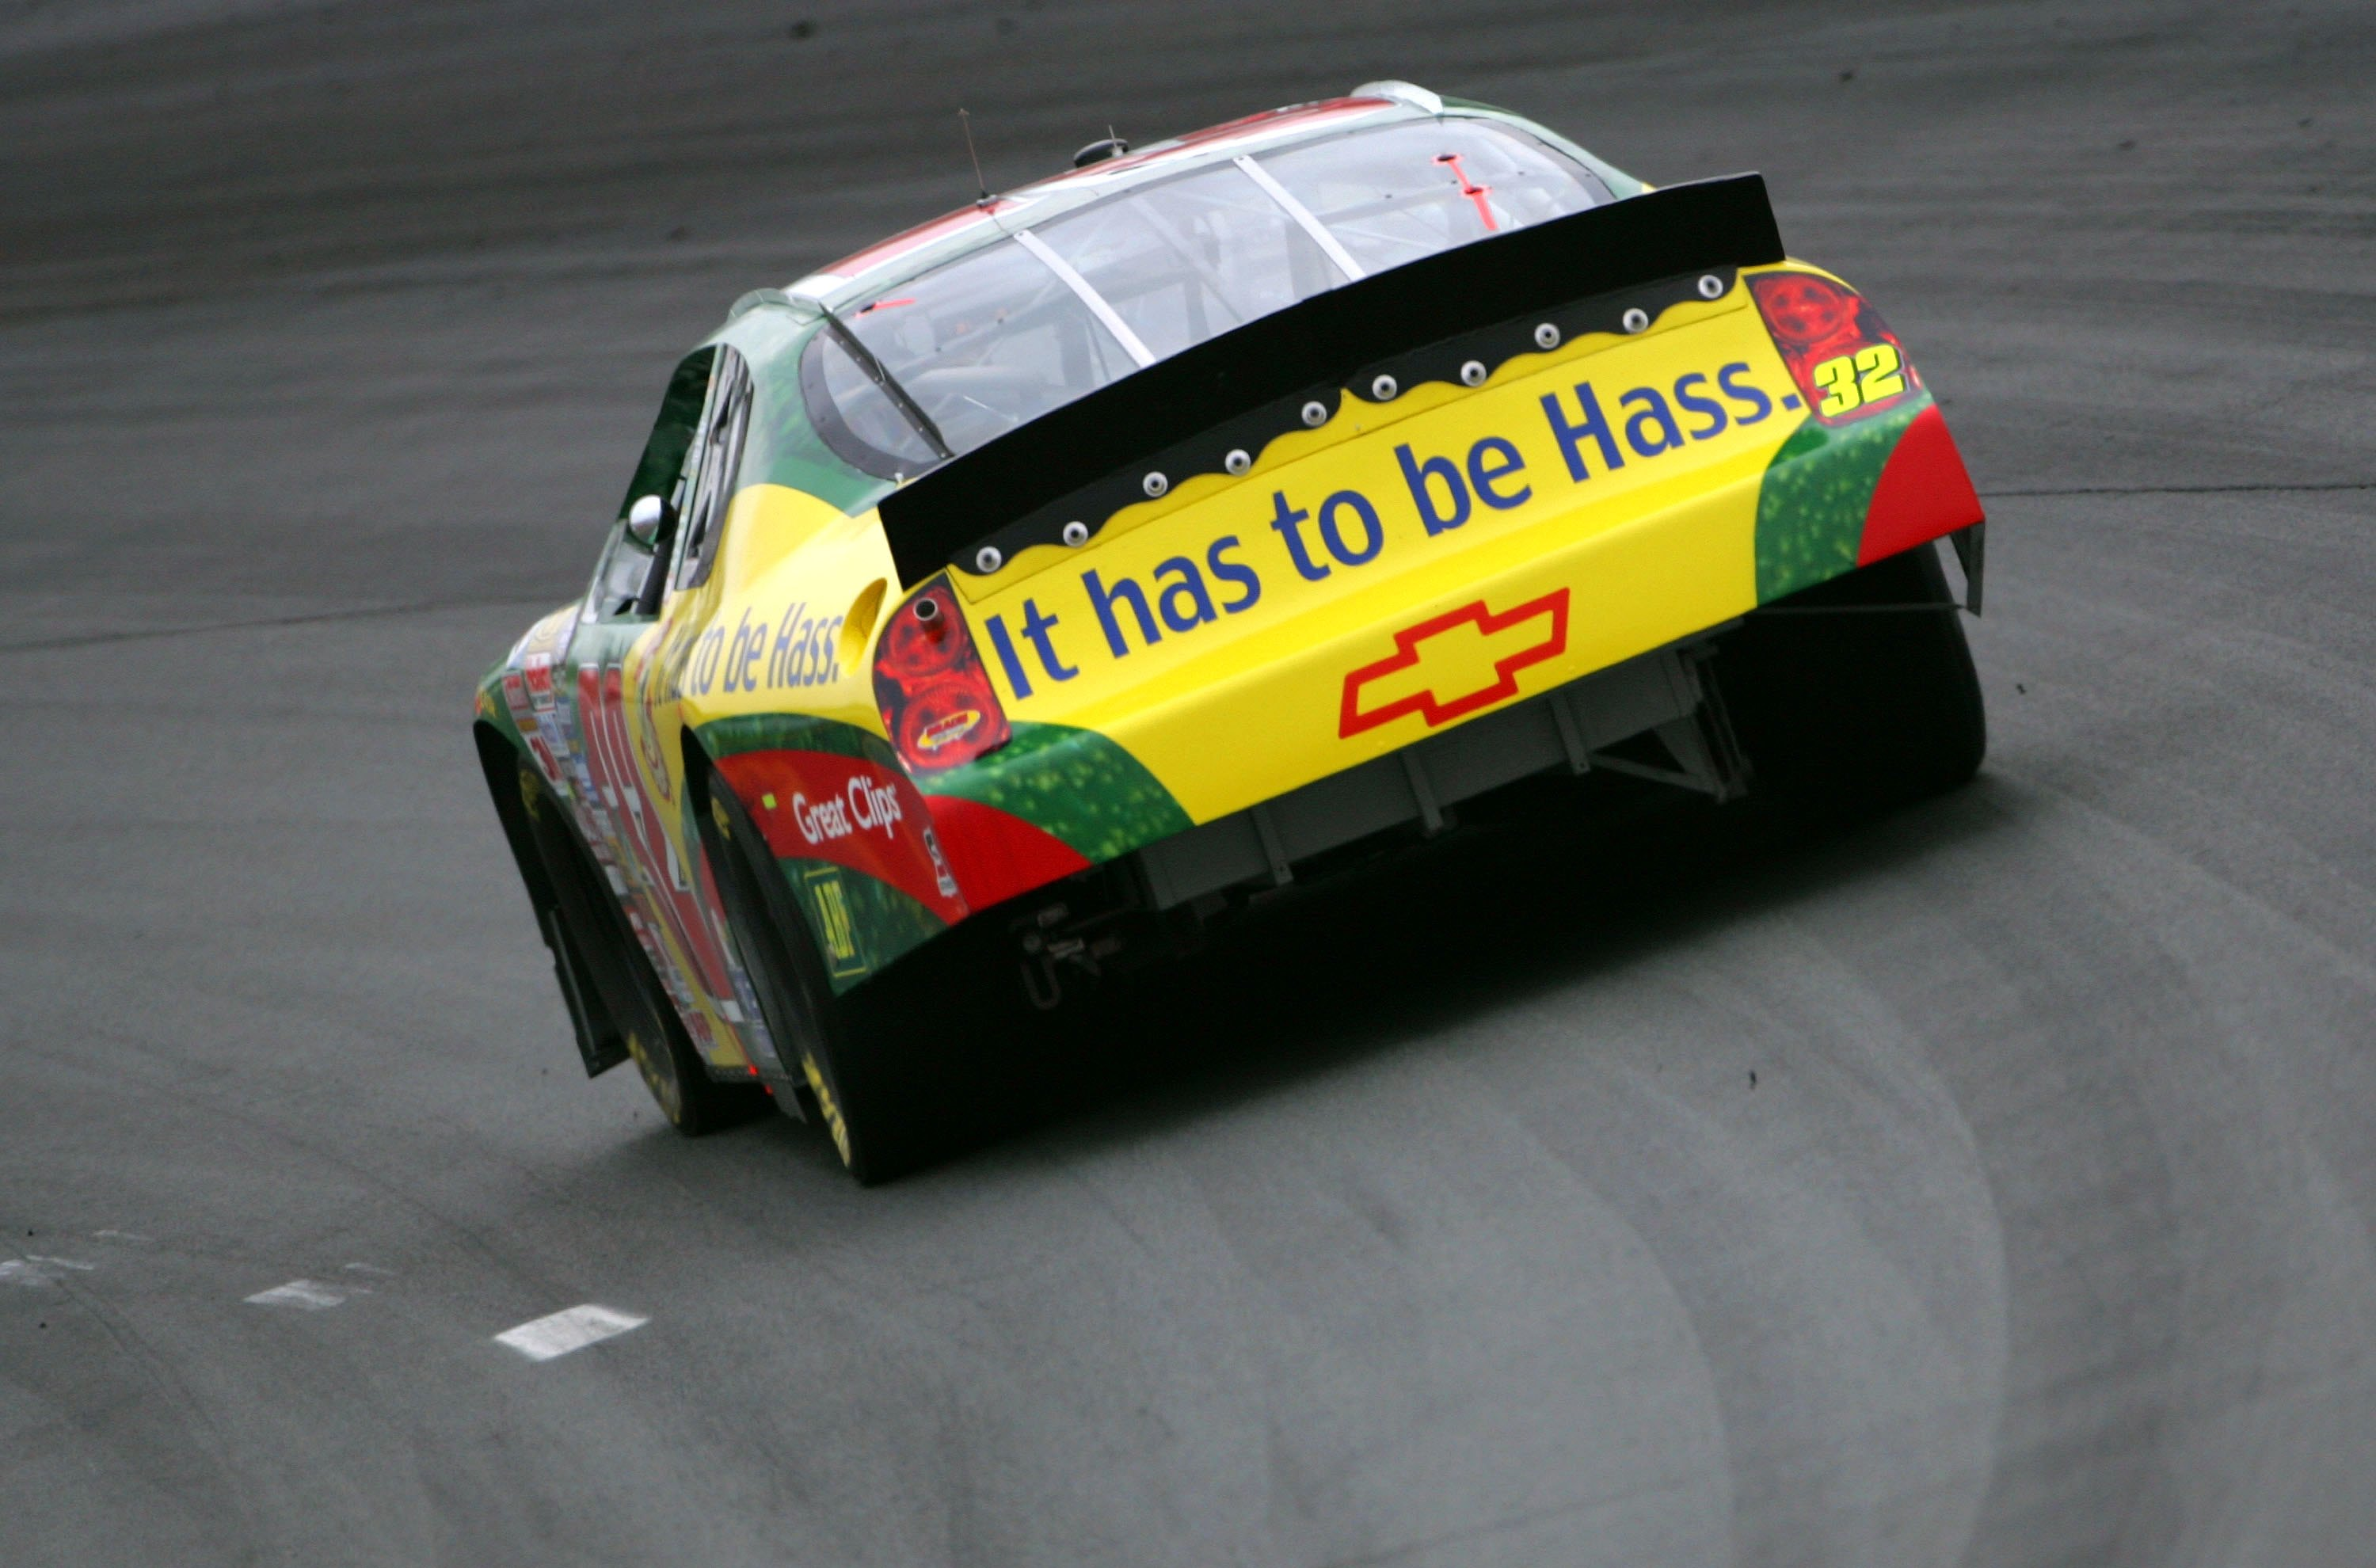 A racing car with an advertisement for the hate avocado.